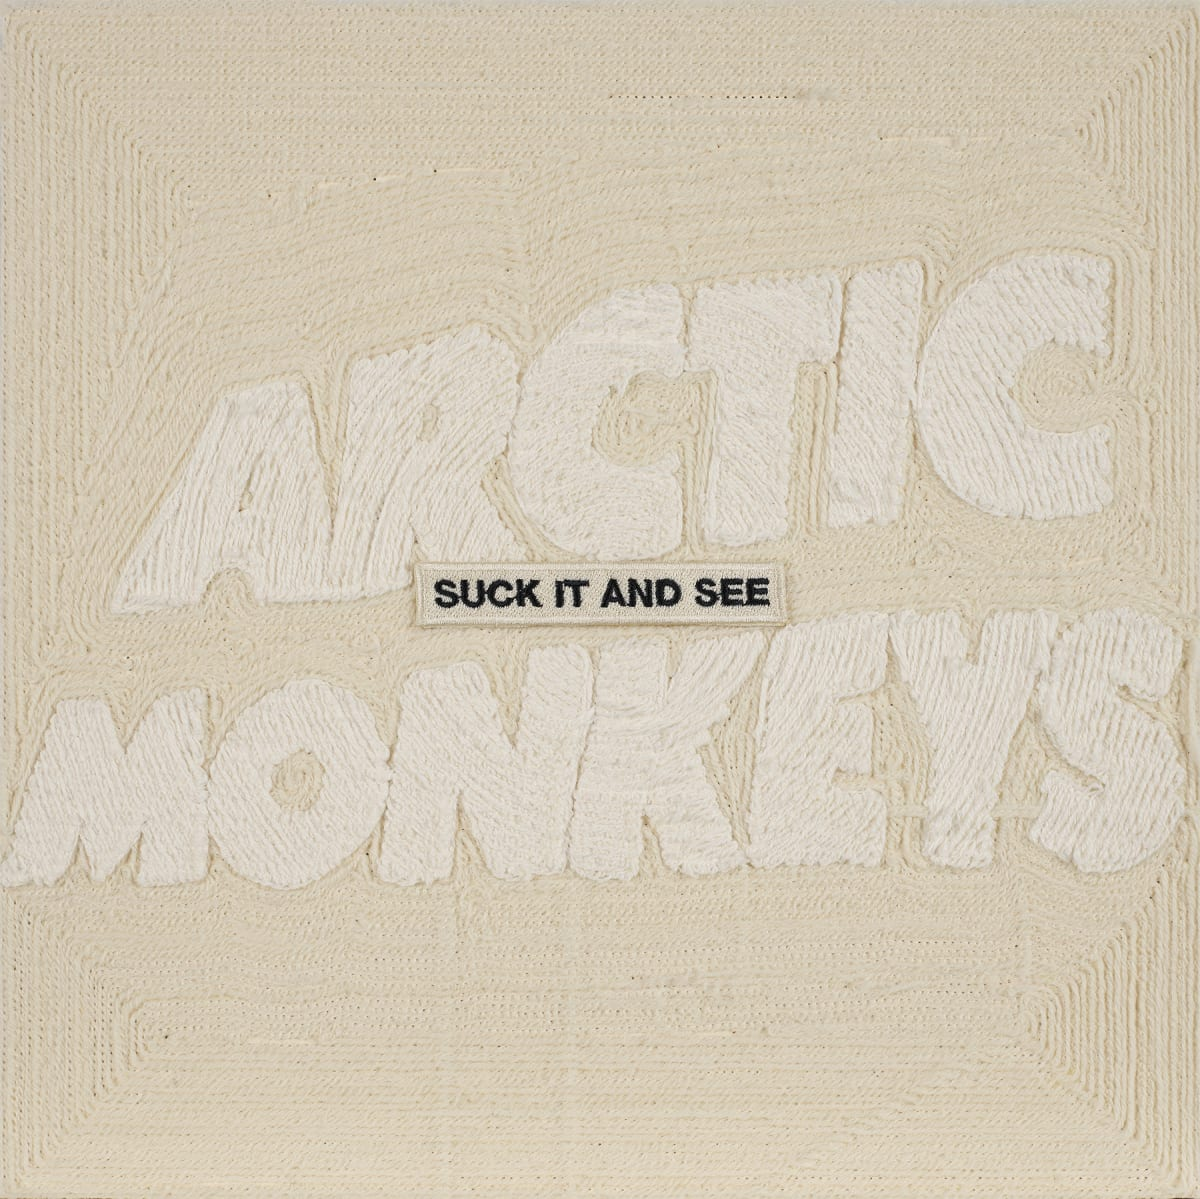 Stephen Wilson, Suck it and See, Arctic Monkeys, 2019